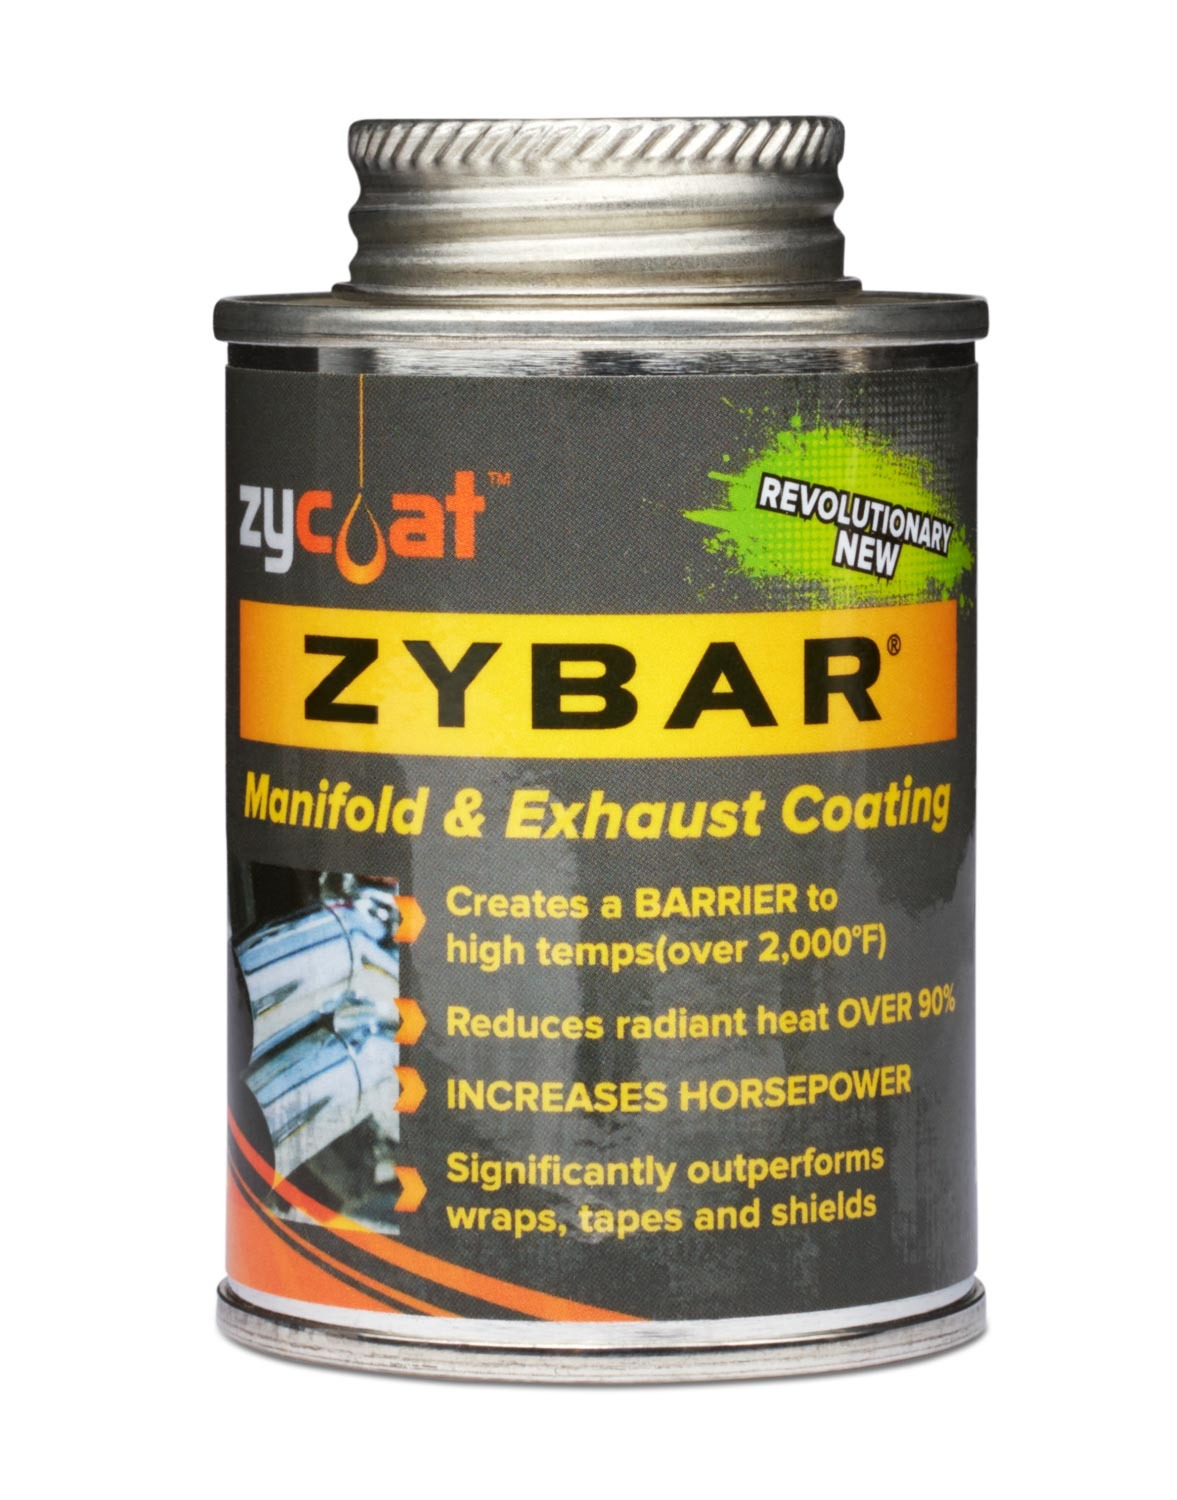 Zycoat 11004 Paint, Exhaust / Header, High Temperature, Ceramic Urethane, Midnight Black, 4 oz Can, Each